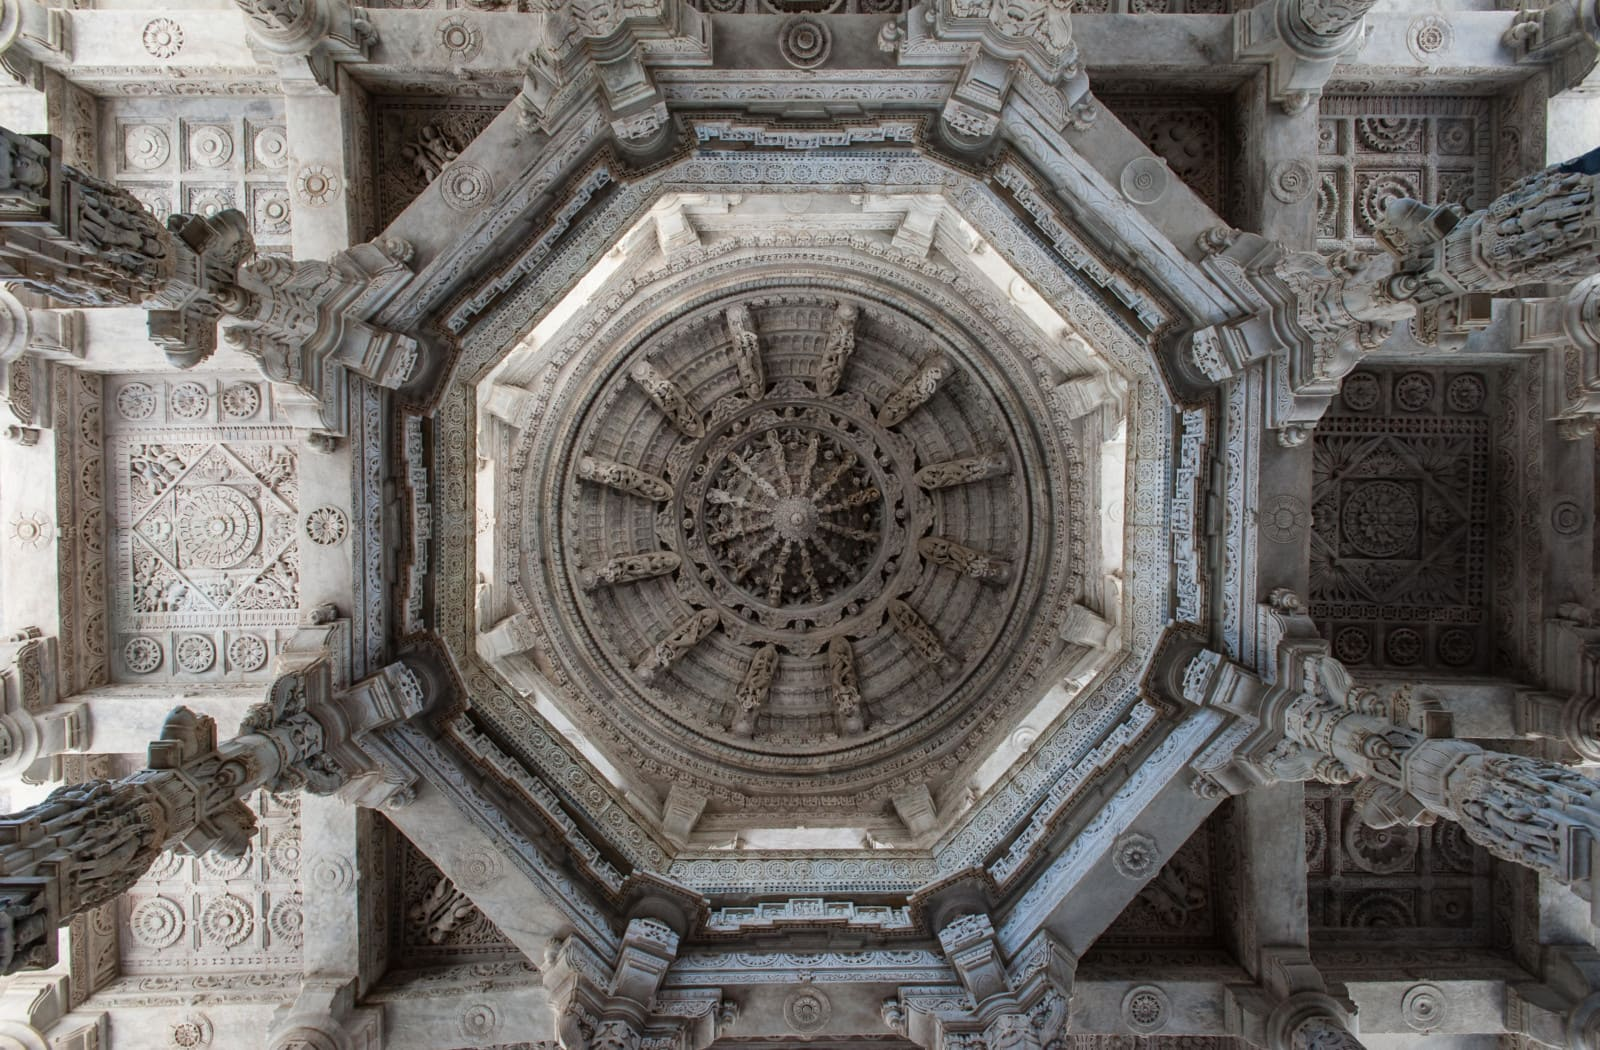 ranakpur-temple-india-london-freelance-photographer-richard-isaac-3200